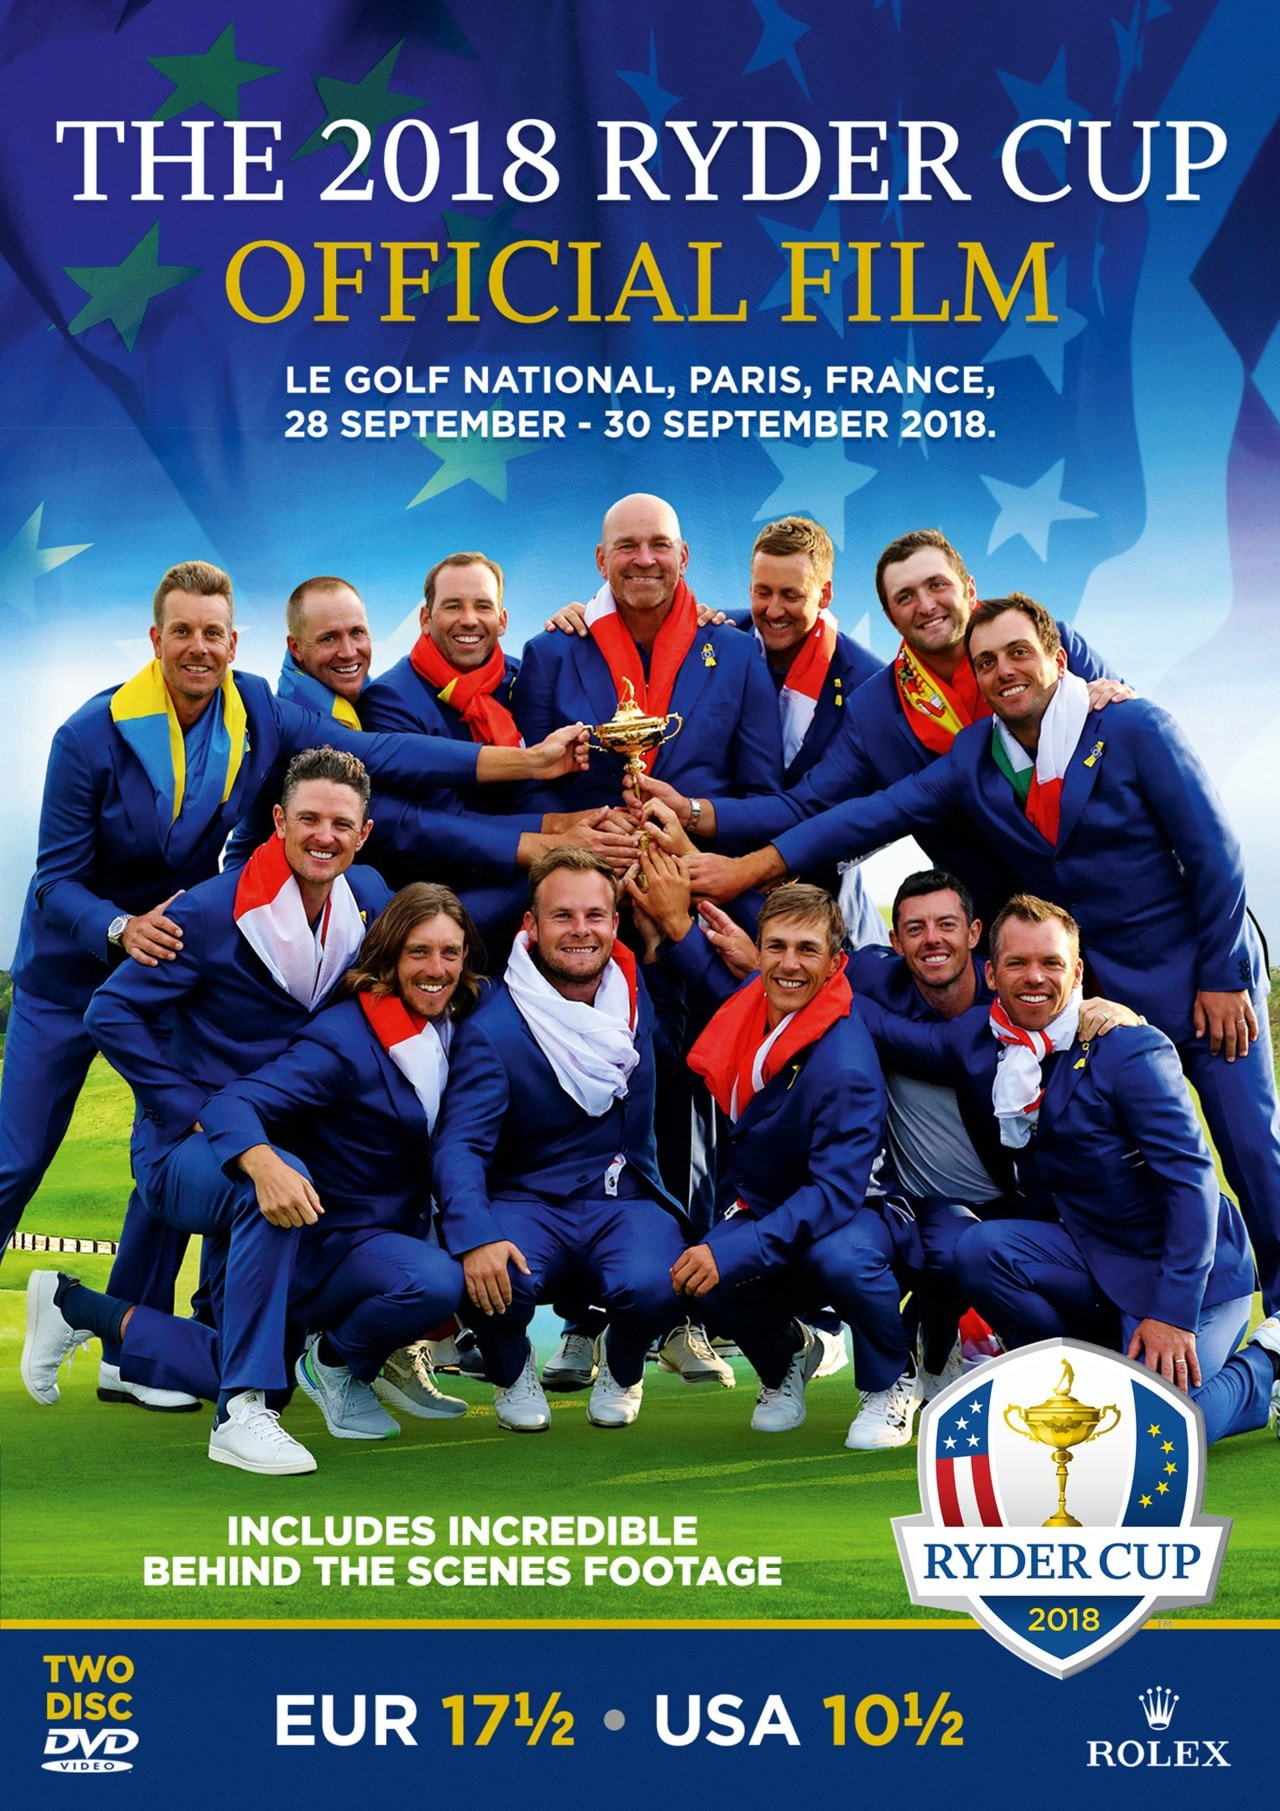 The 2018 Ryder Cup Official Film - 1